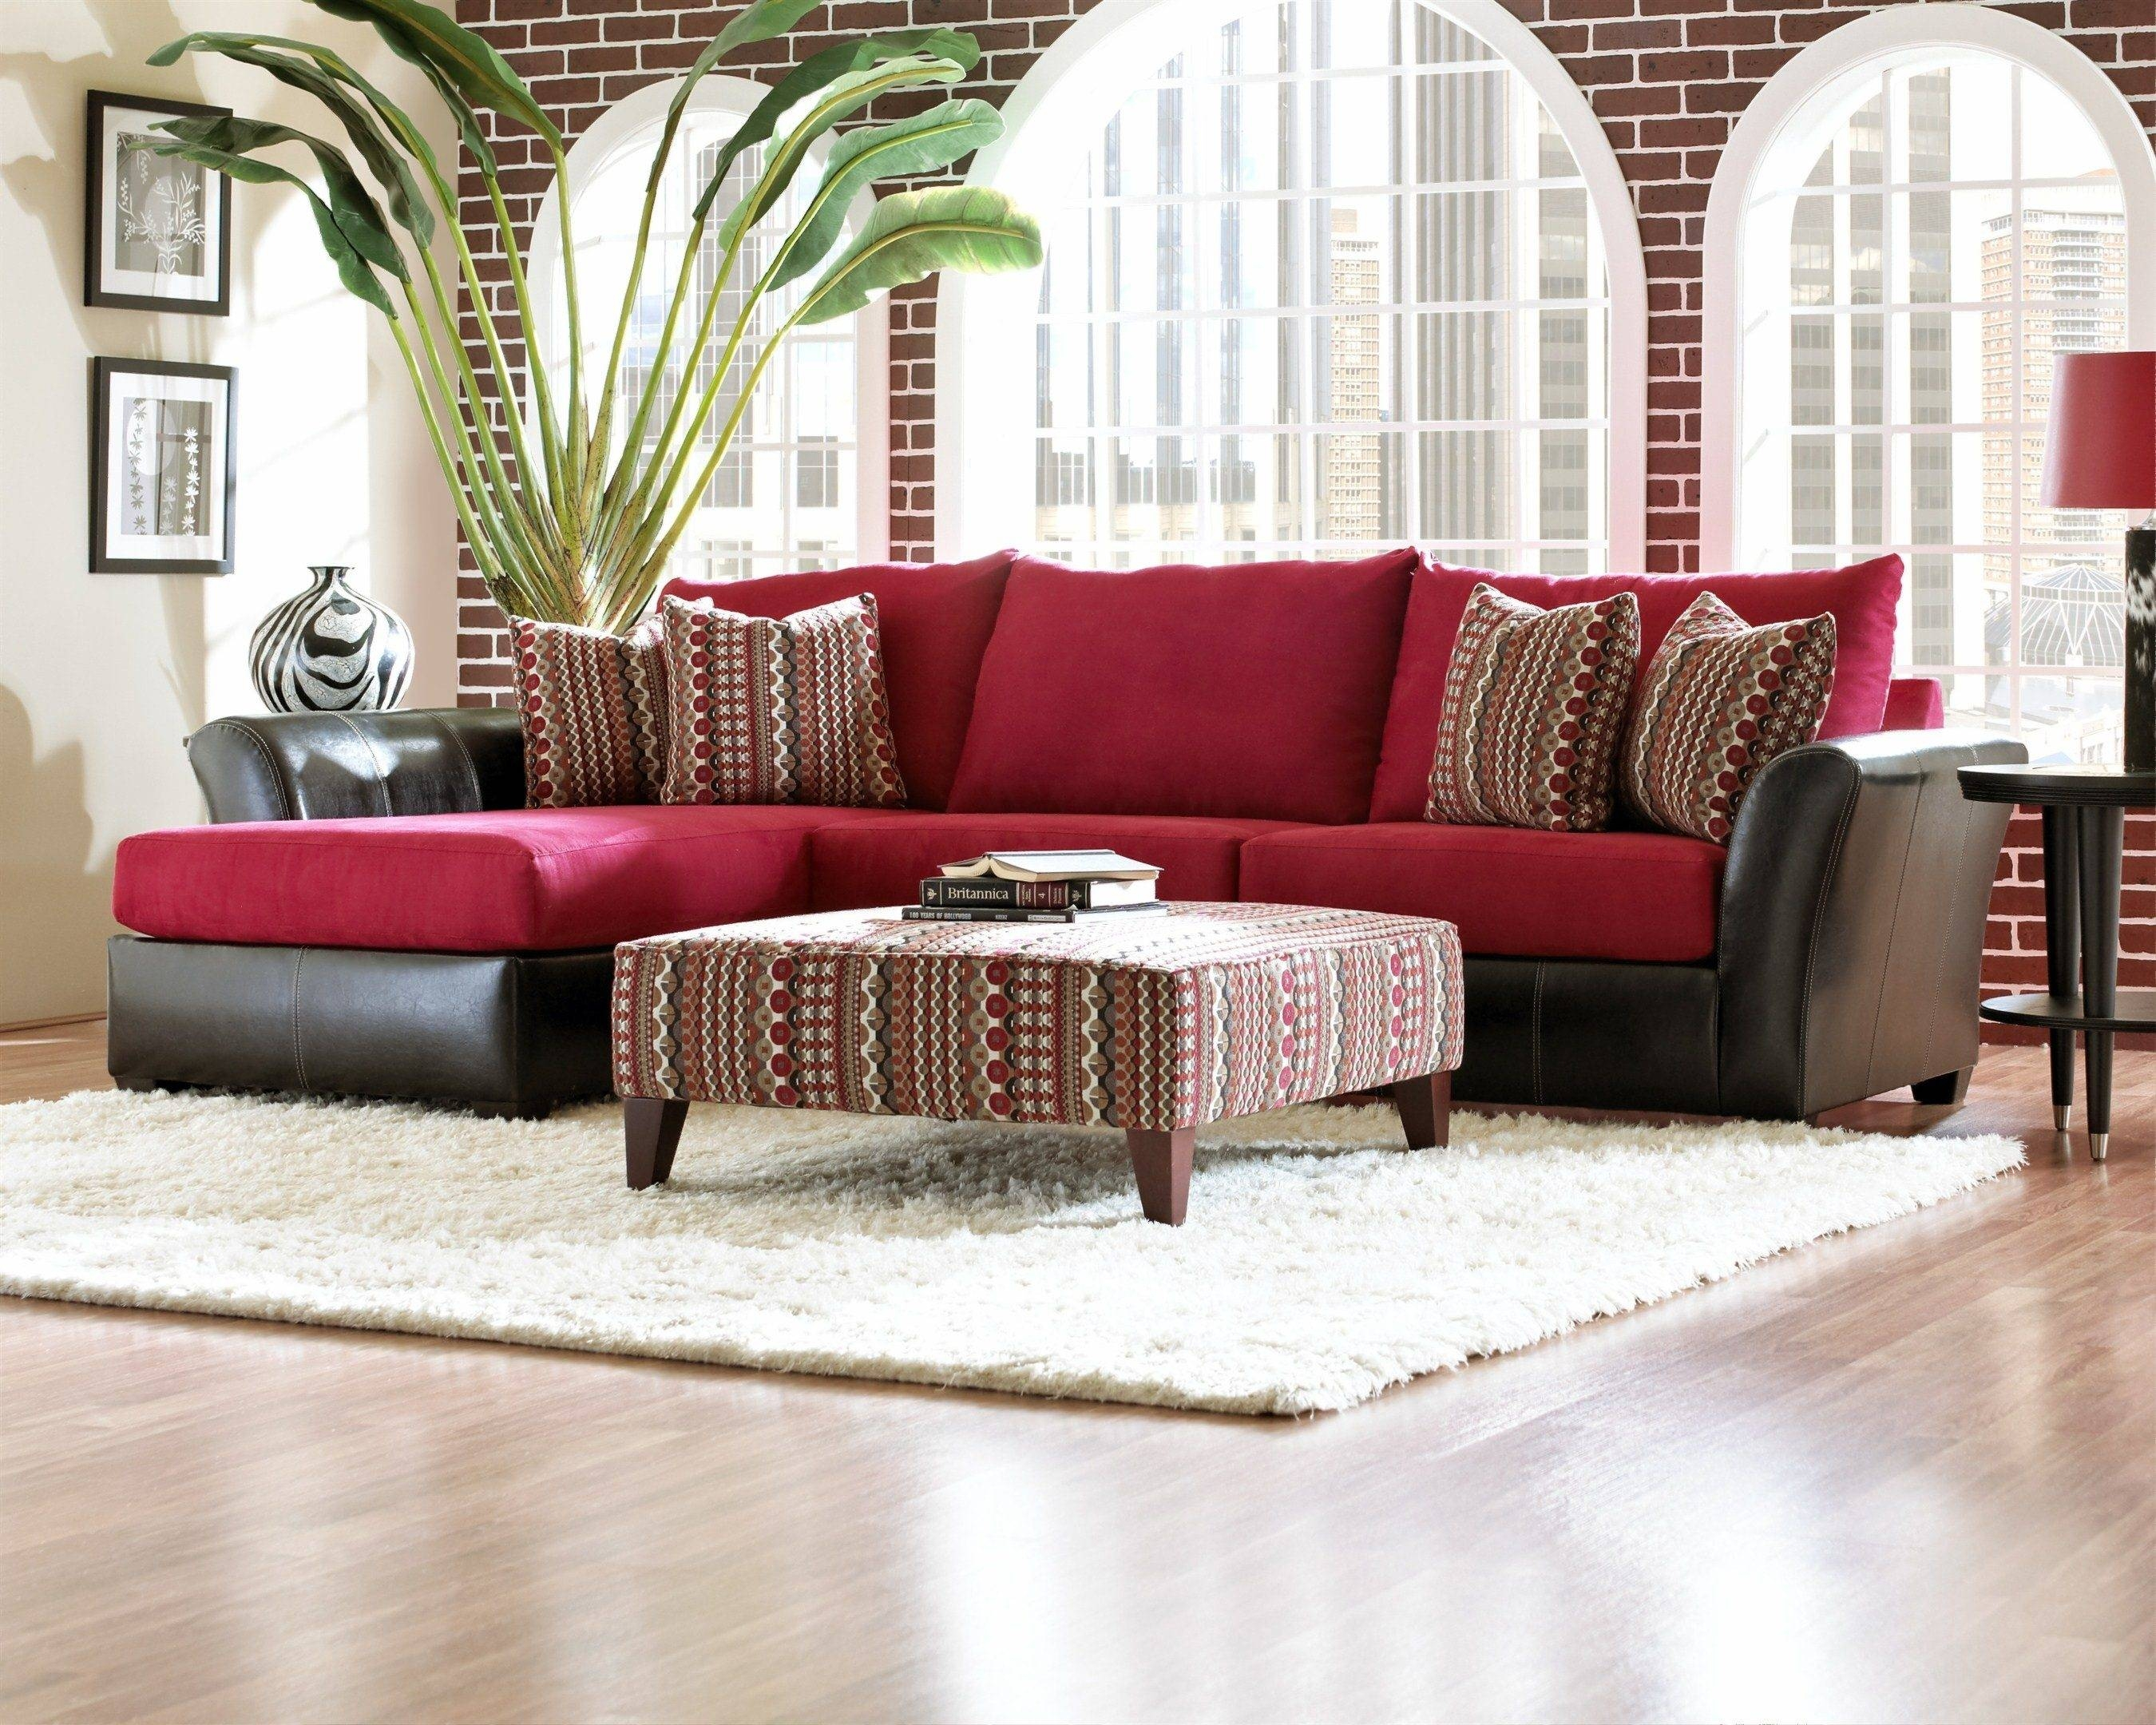 30 Inspirations of Colorful Sectional Sofas